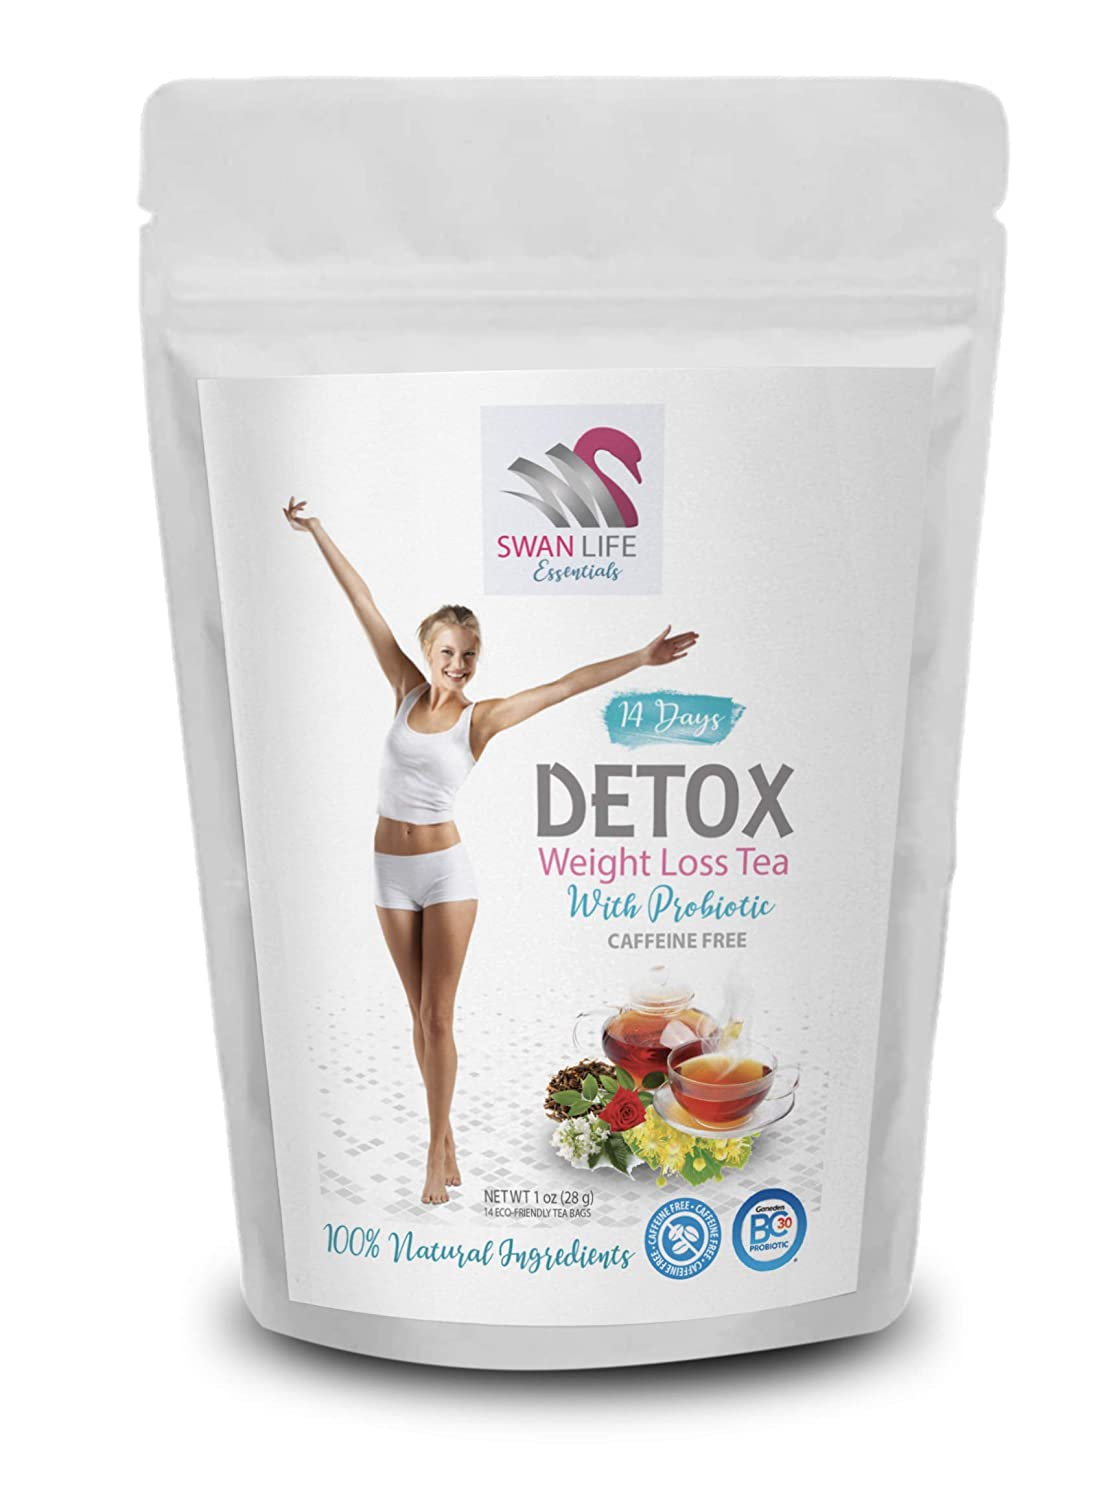 probiotic tea bags – caffeine free – weight loss tea for women belly fat - appetite control - 14 Days DETOX WITH PROBIOTIC herbal tea - by SWAN LIFE ESSENTIALS